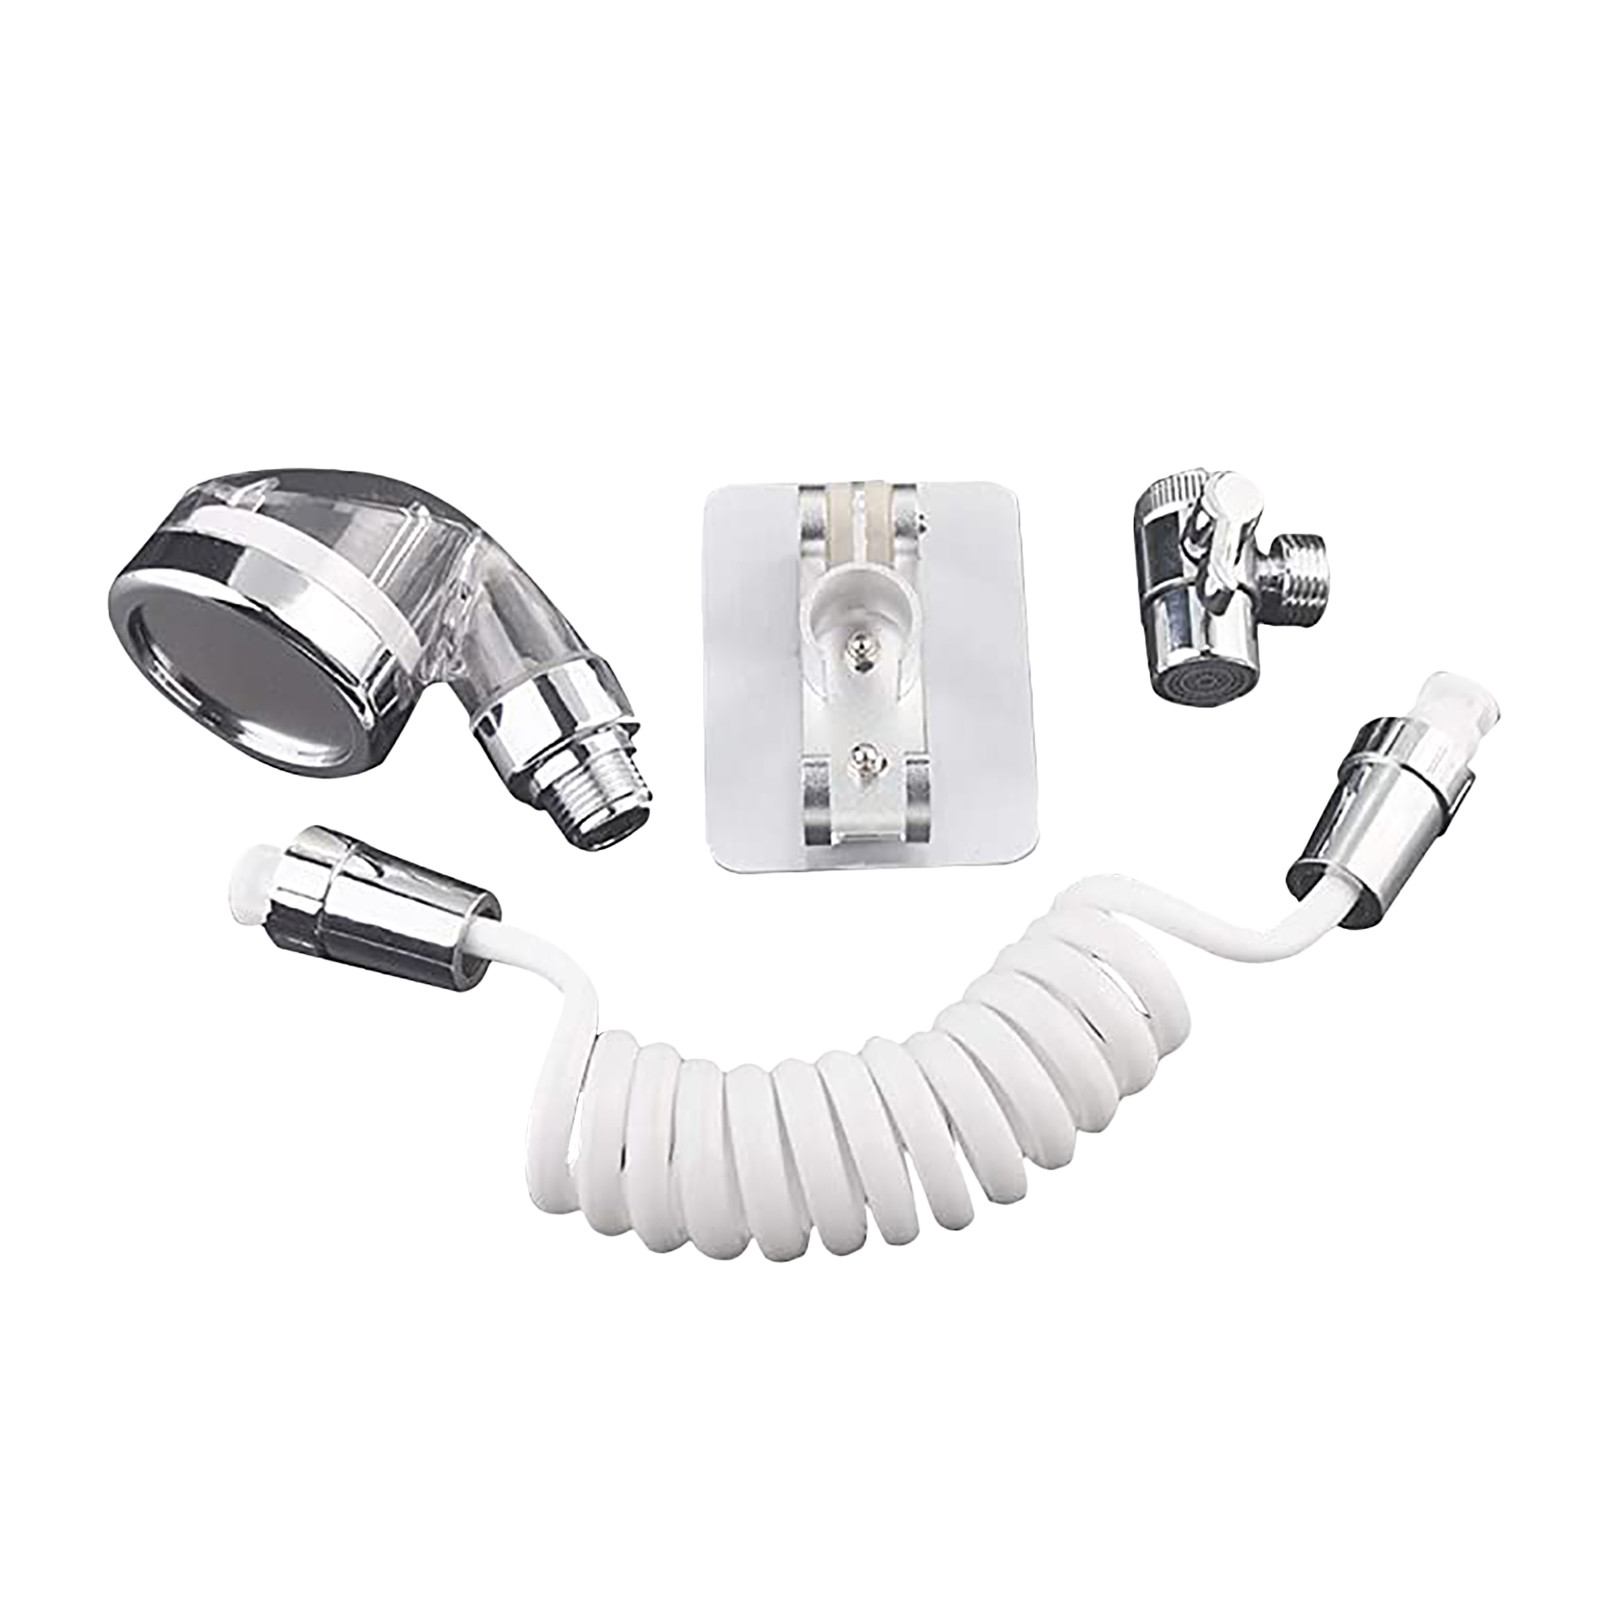 Hf67e0063db184861a8926491ddf9b9f1P Bathroom Wash Face Basin Water Tap External Shower Head Toilet Hold Filter Flexible Hair Washing Faucet Rinser Extension Set #40